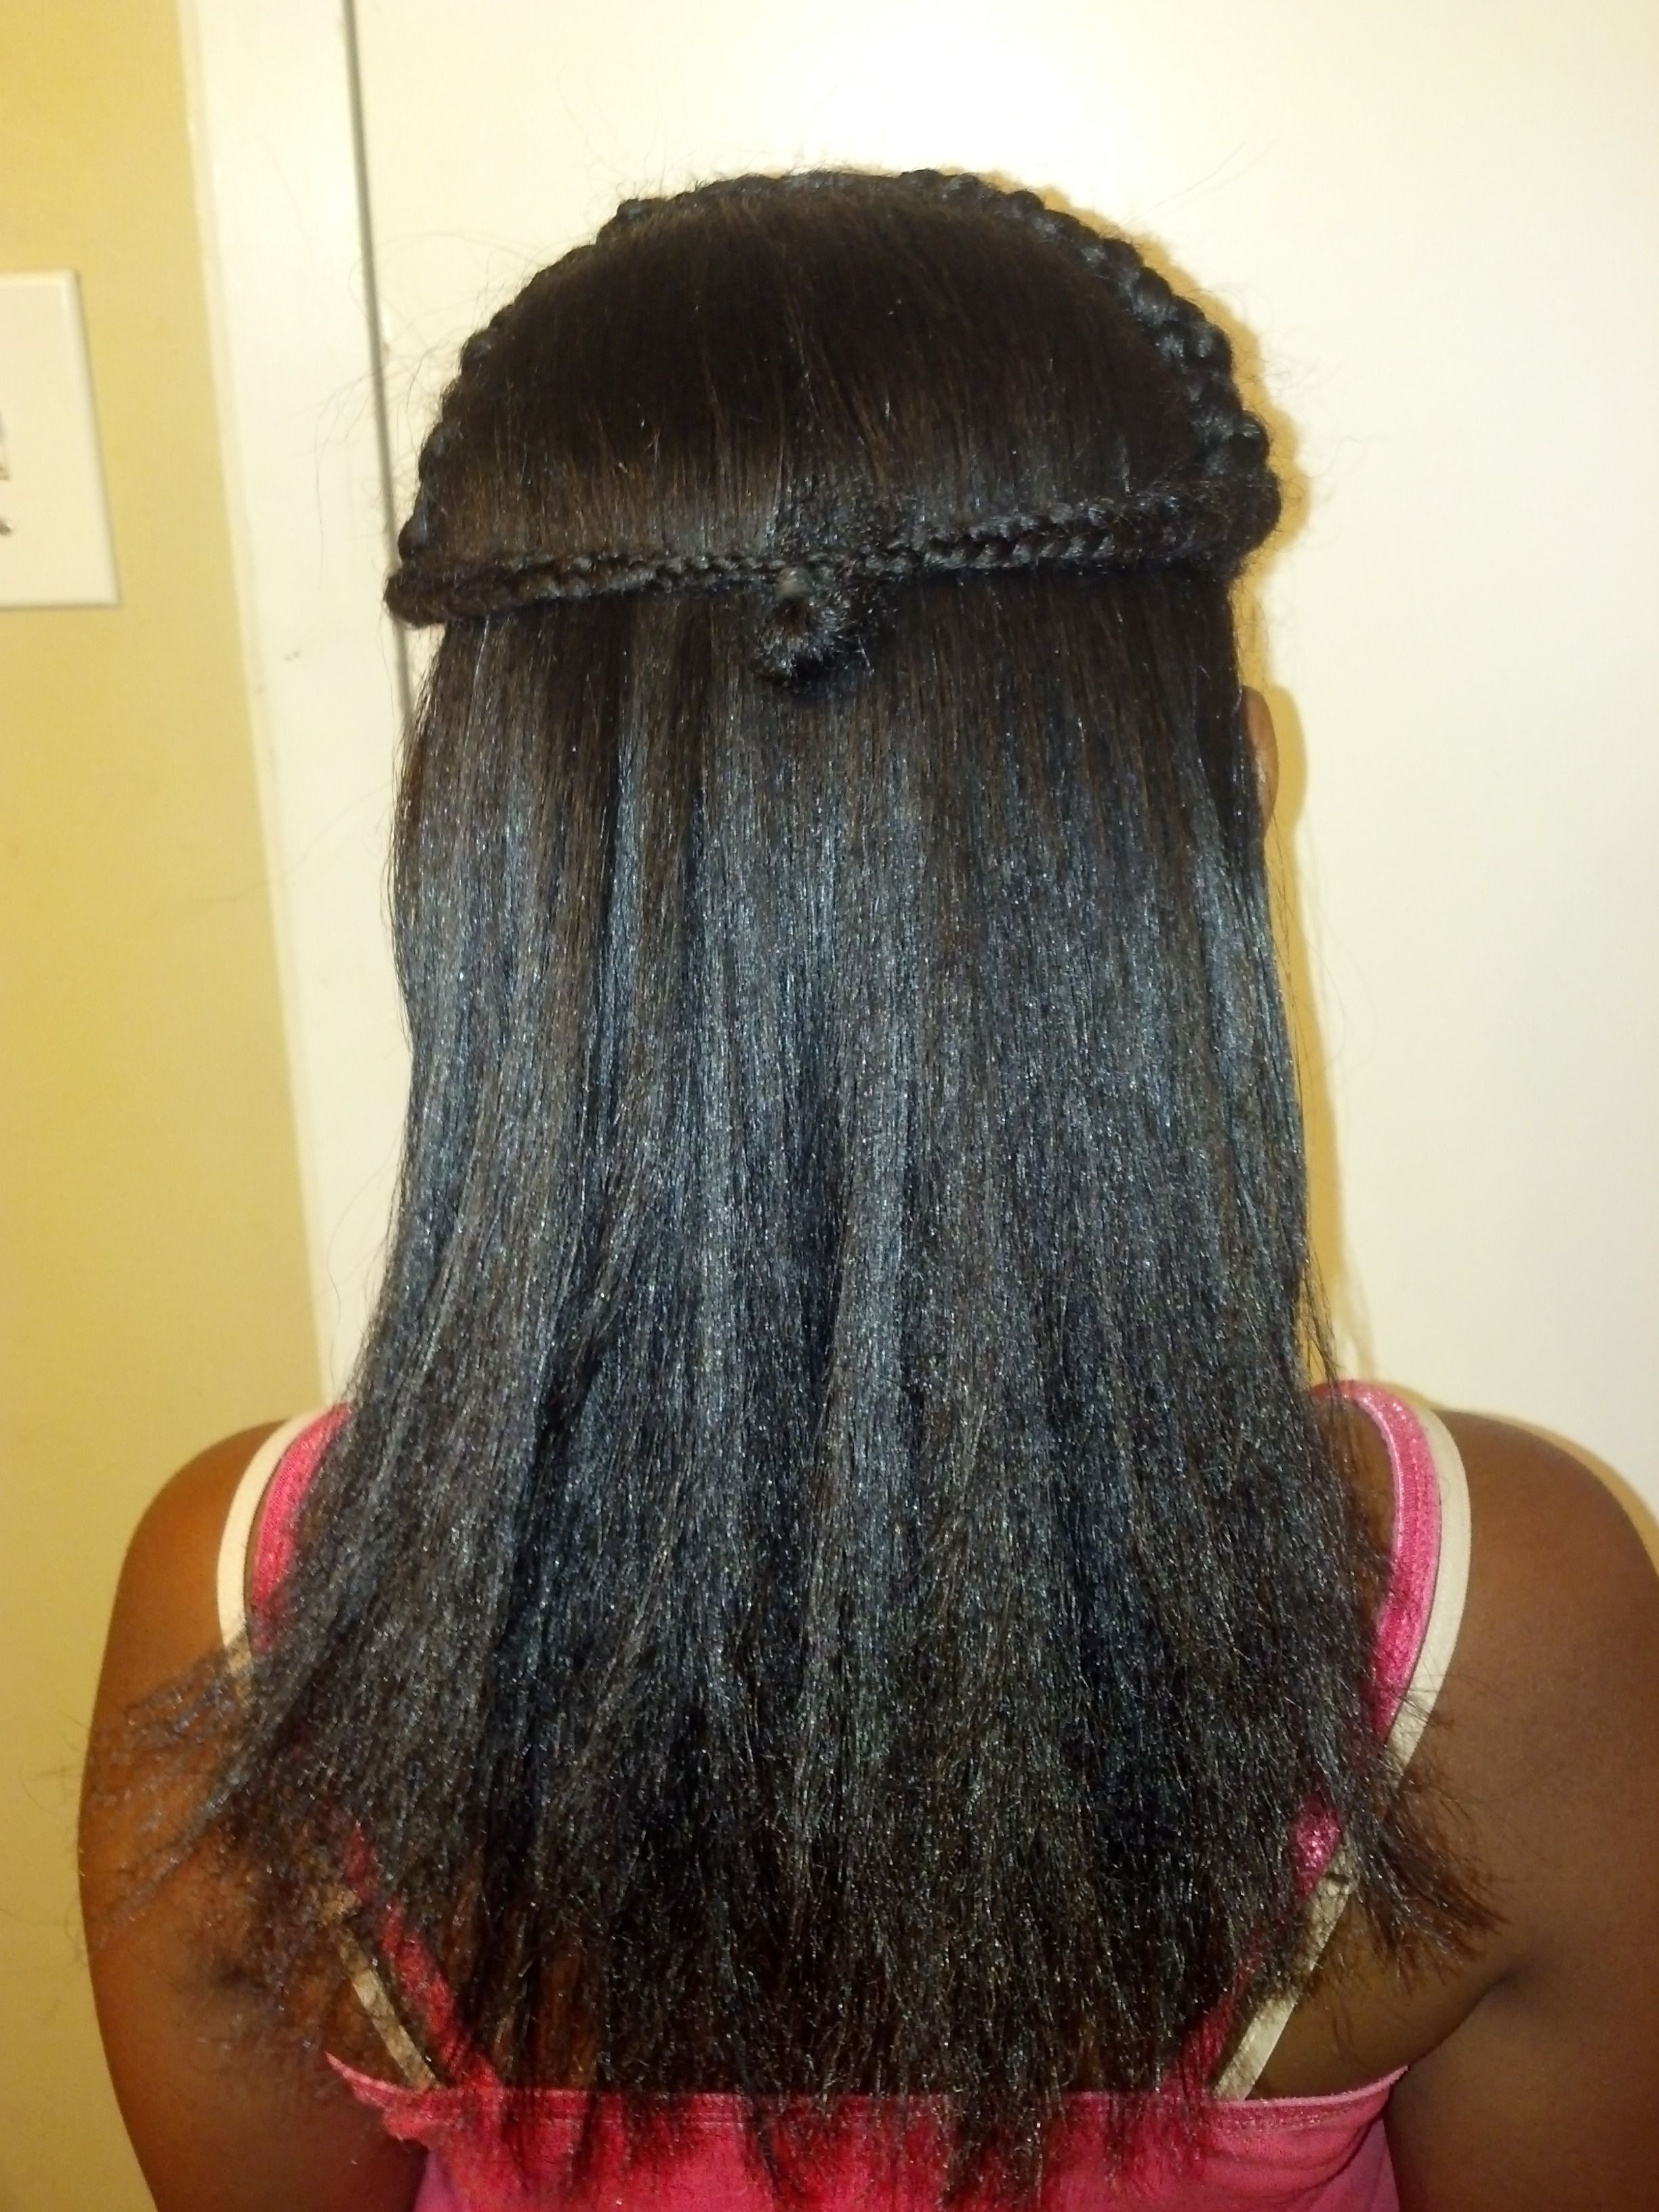 My daughter's hair flat ironed (Chi flat iron) with only ...